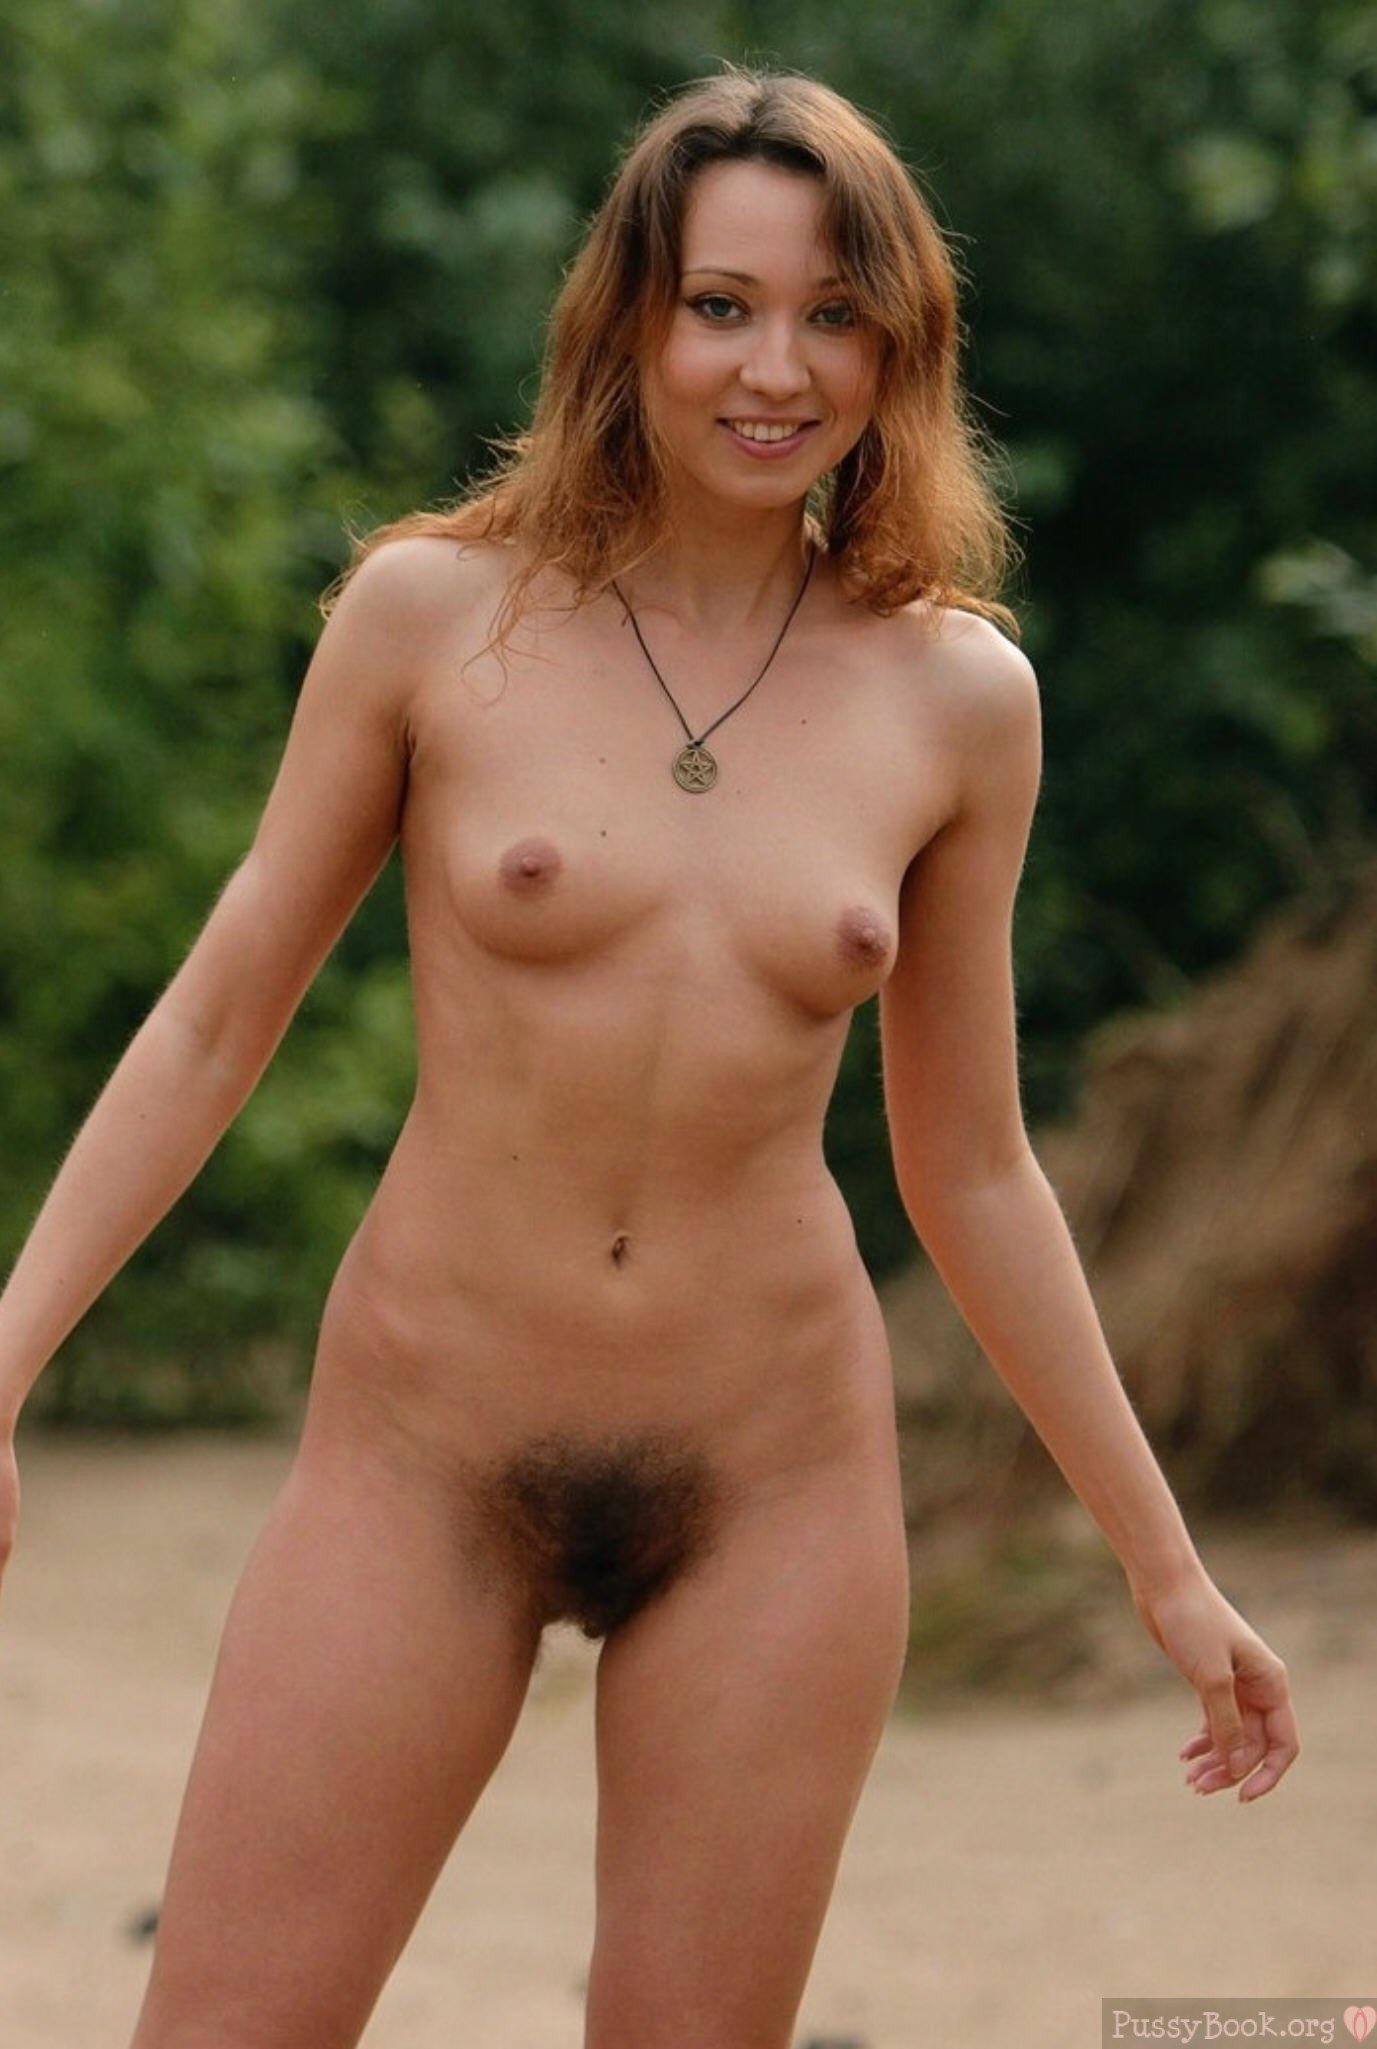 Nudist picture shaved